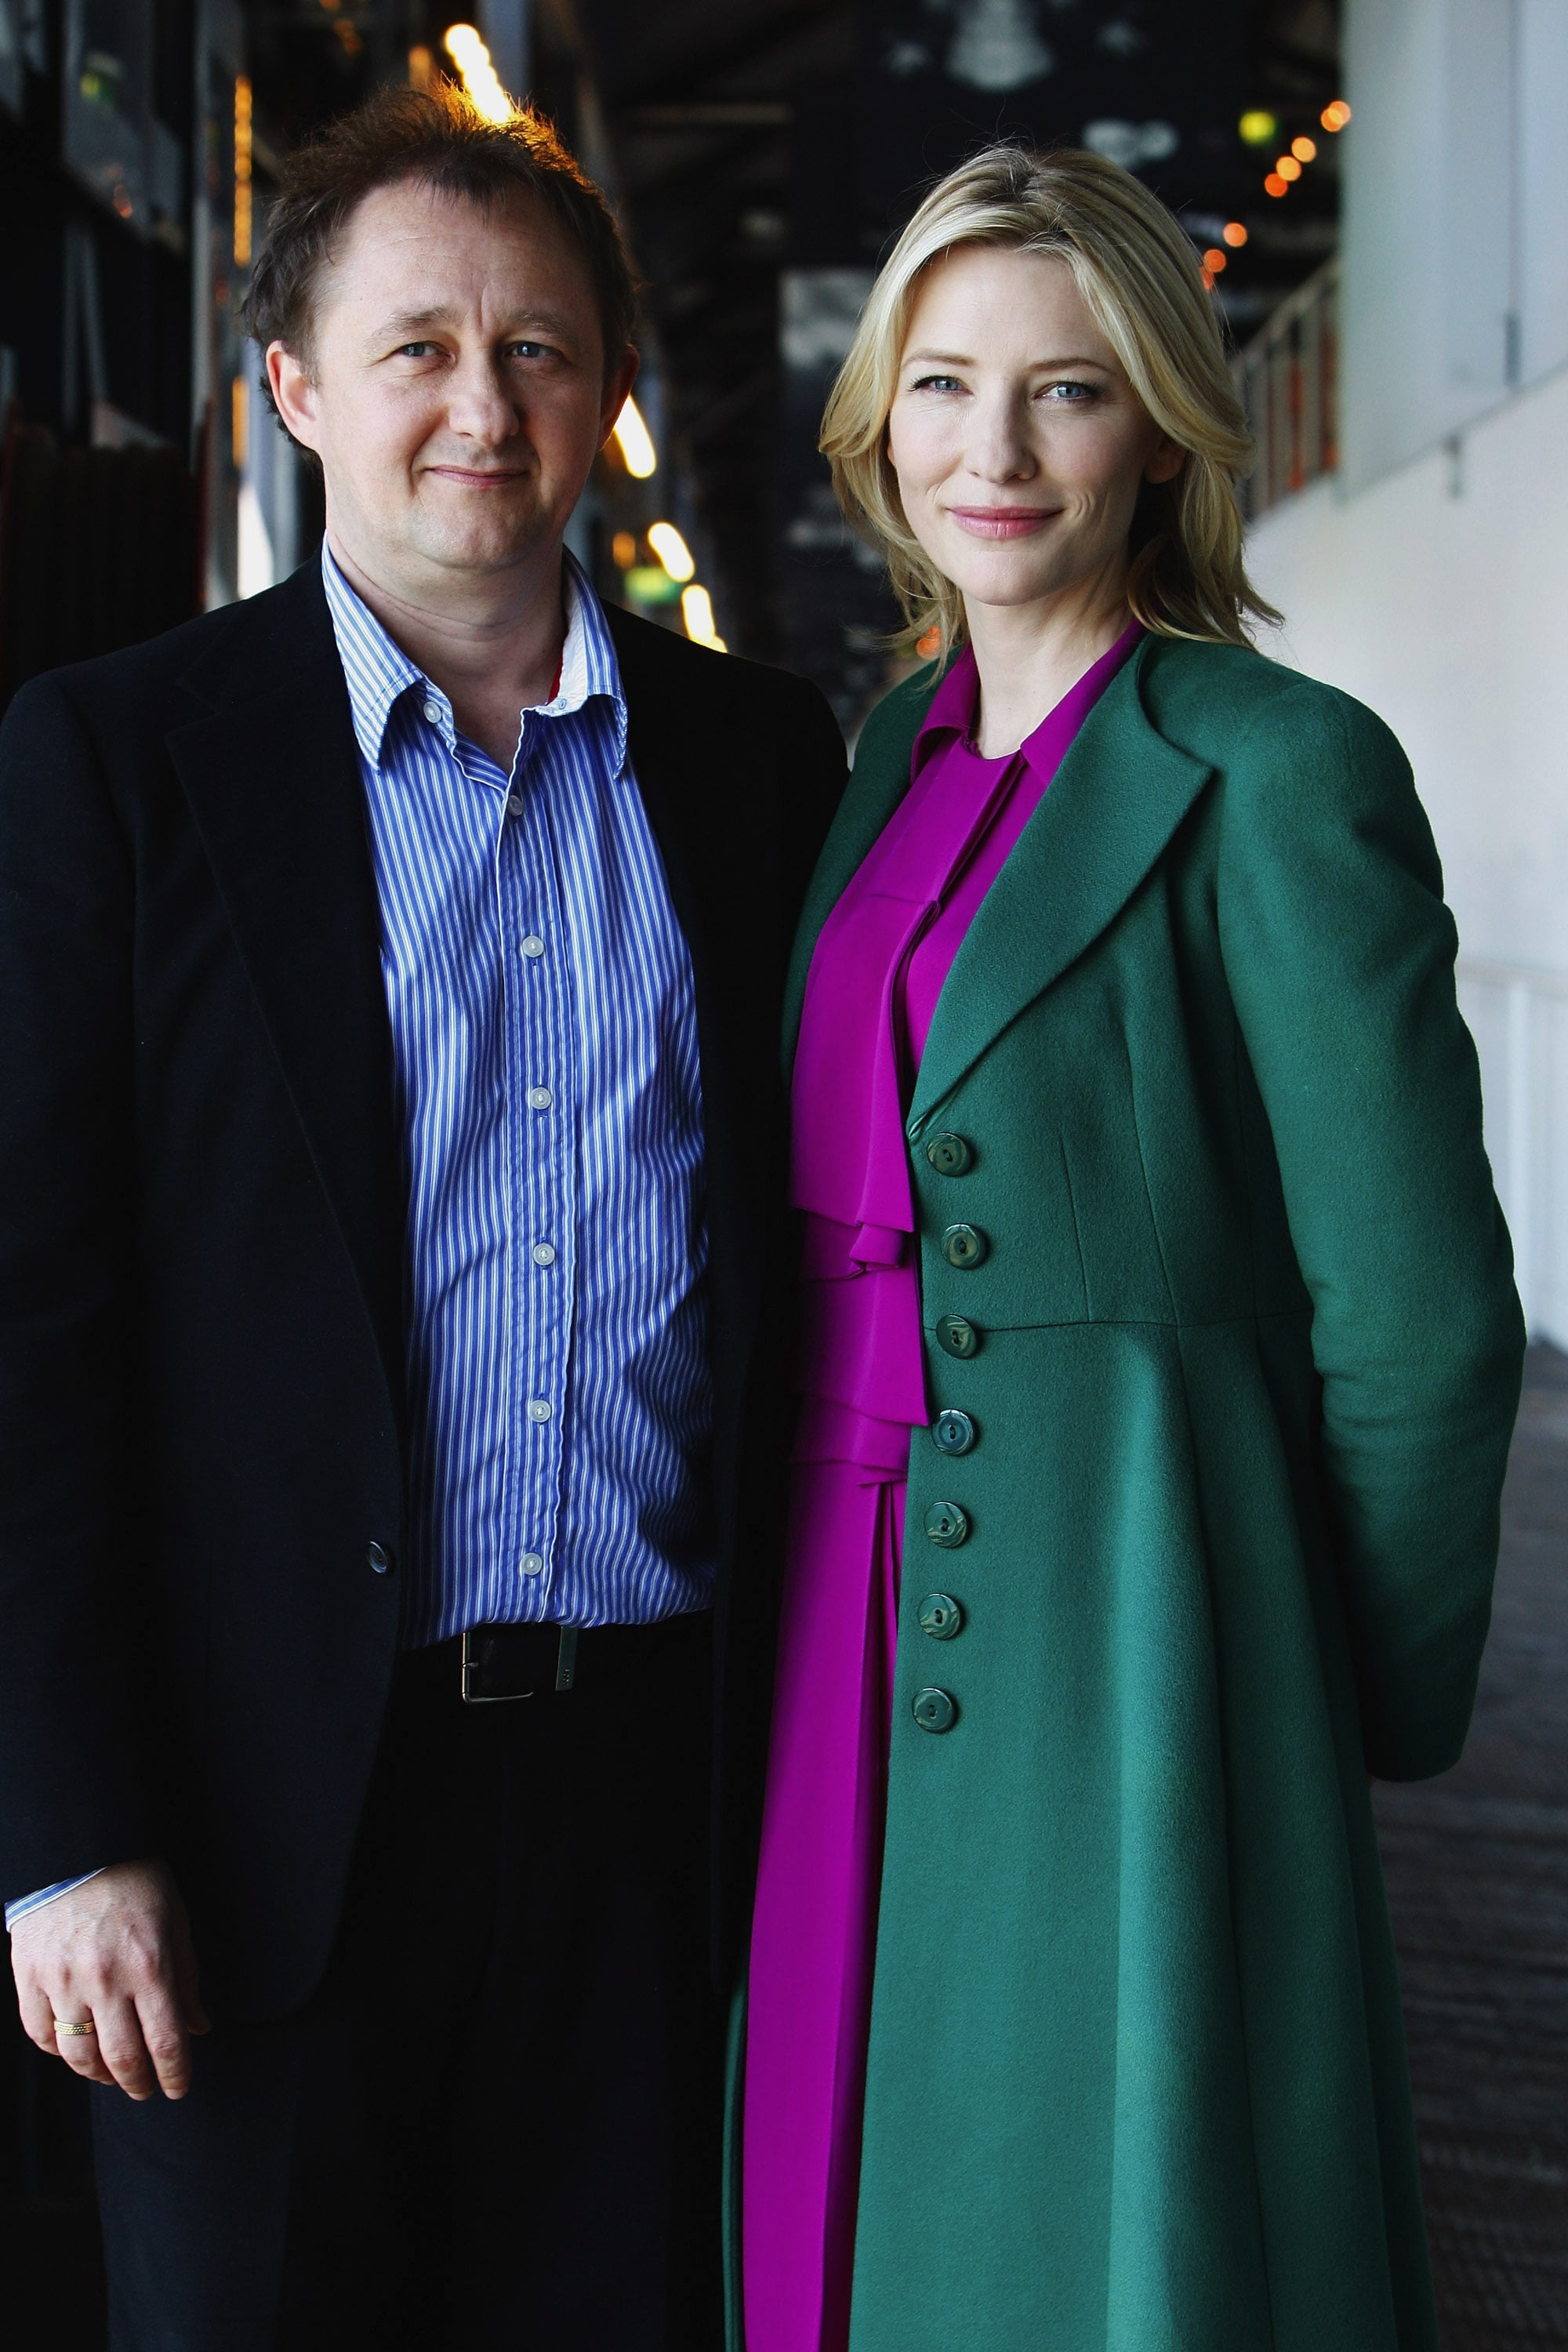 In 2009, Cate and Andrew posed at the Sydney Theatre Company ahead of a new season.